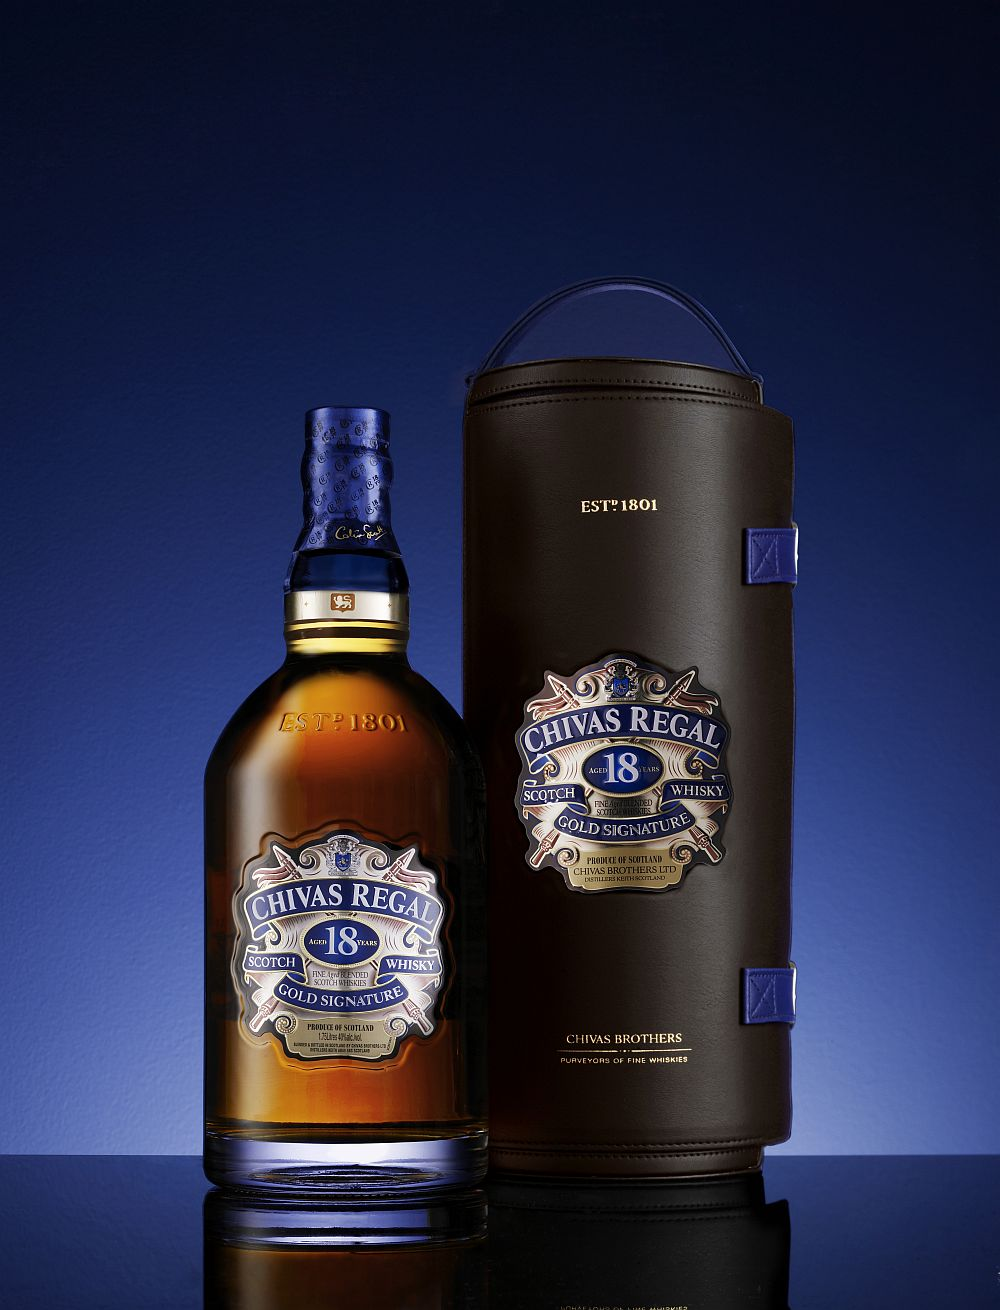 Chivas regal 18 y o 1 75 luxury edition popsop - Chivas regal 18 1 liter price ...